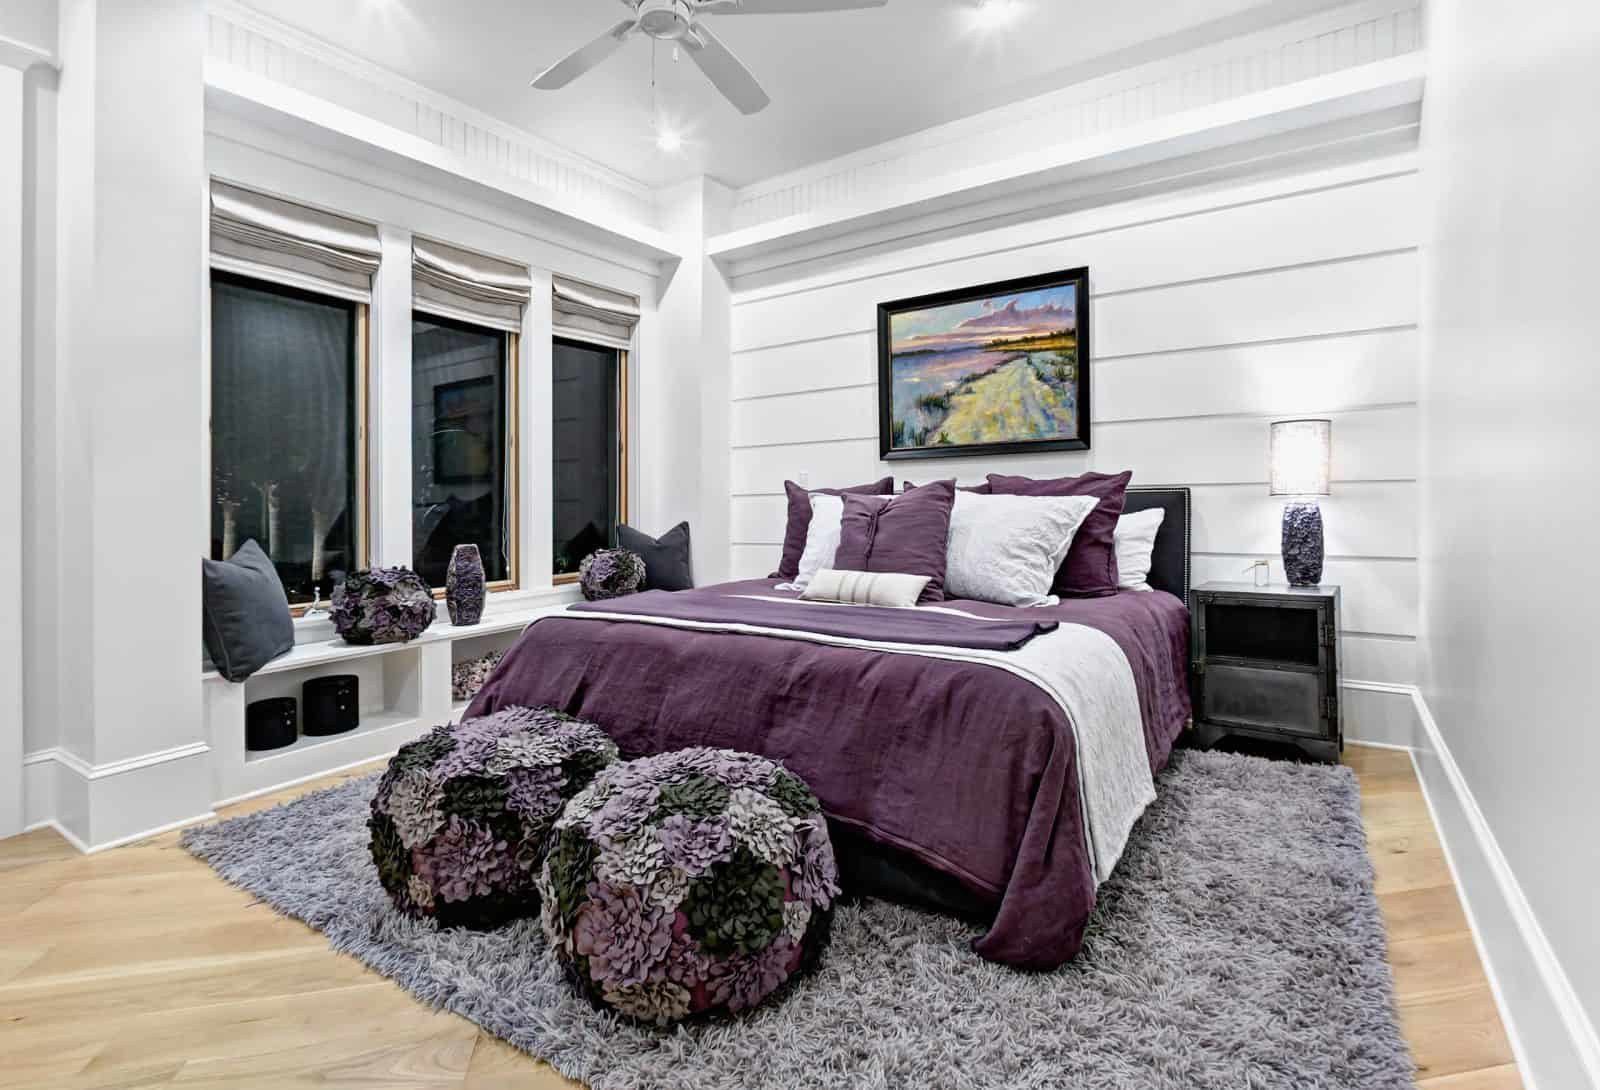 13 Most Wonderful Purple And Grey Bedroom Ideas That You Will Love Jimenezphoto